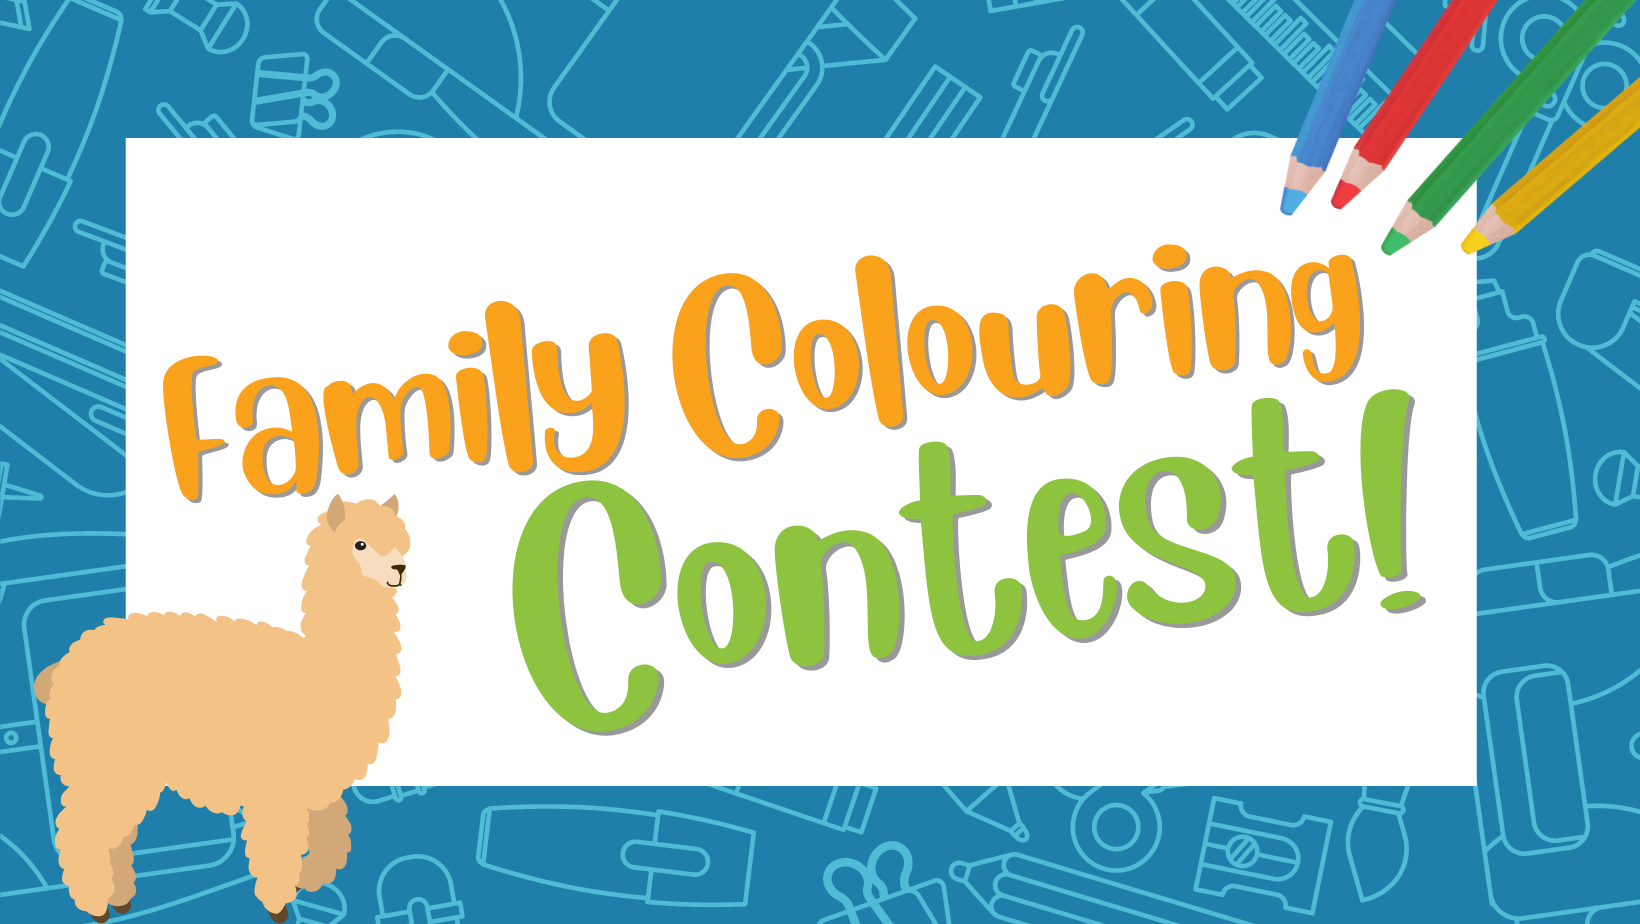 Family Colouring Contest!